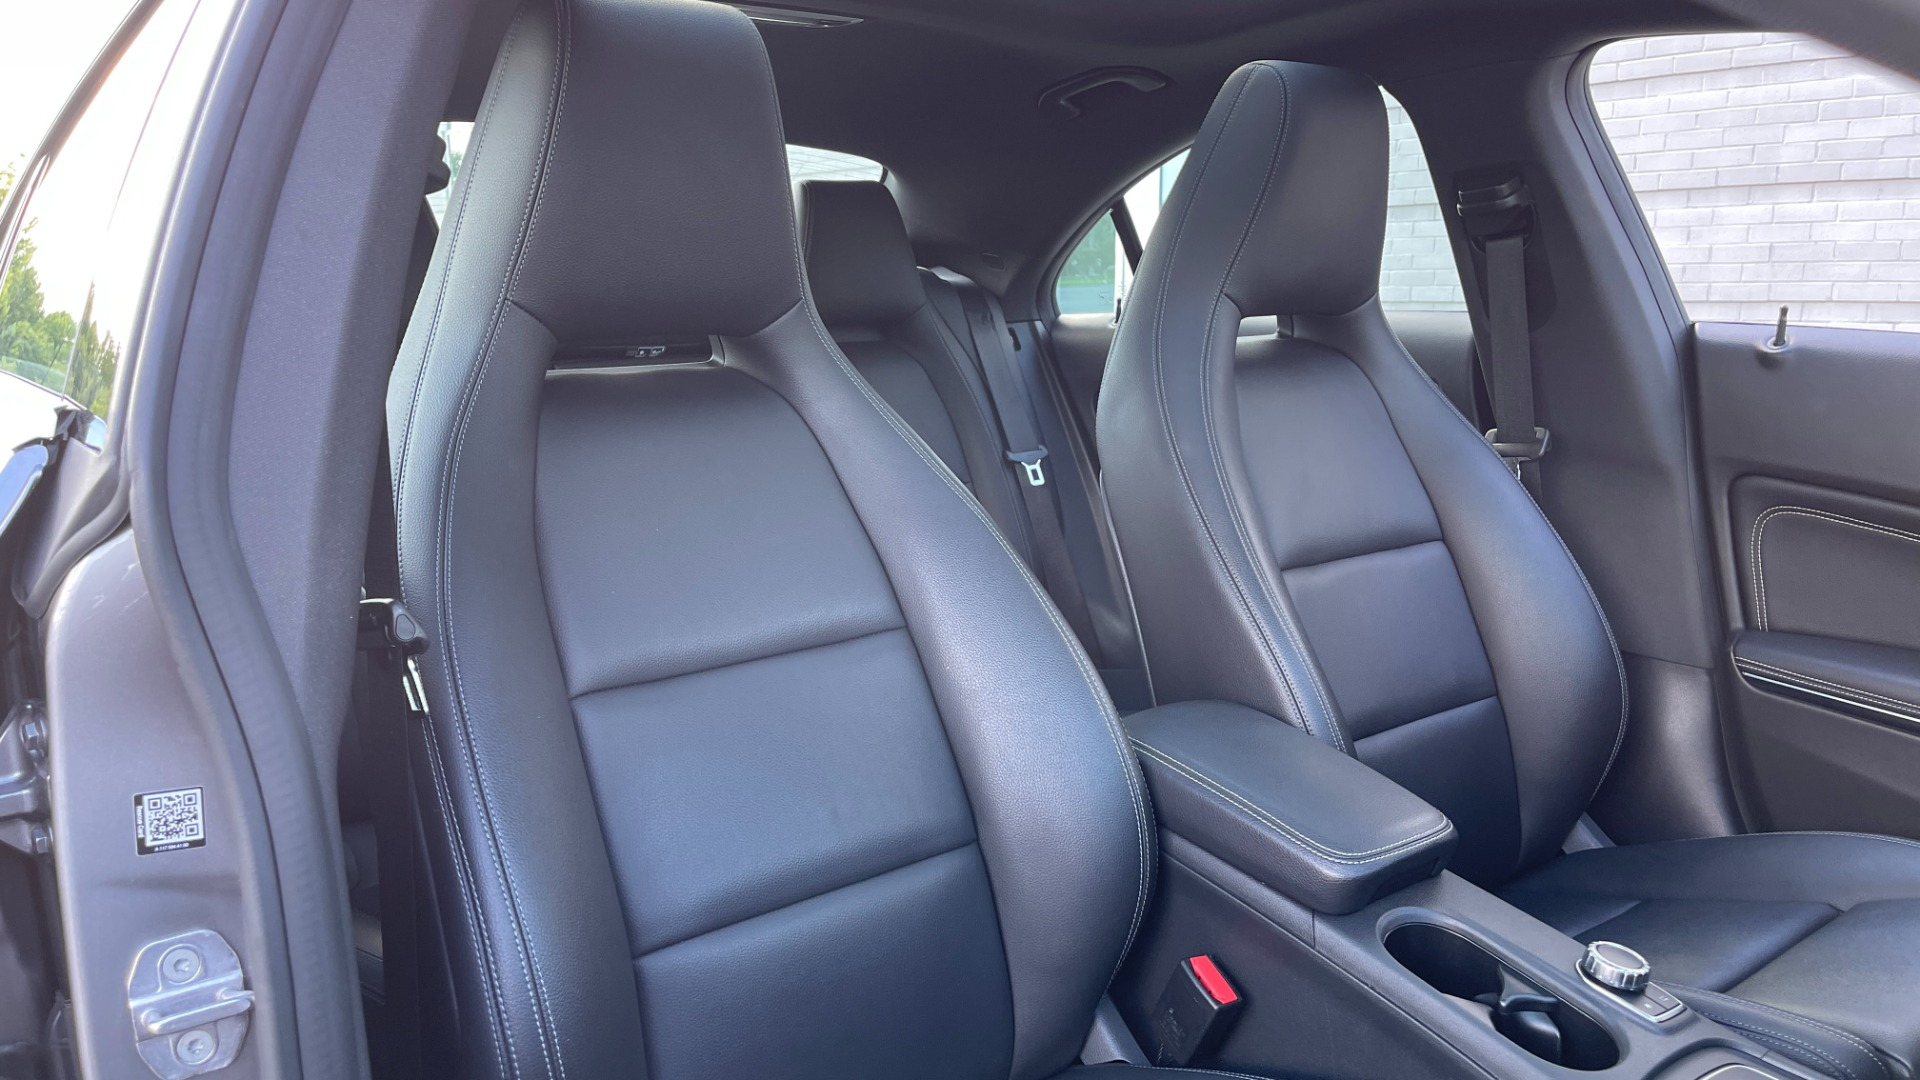 Used 2019 Mercedes-Benz CLA 250 4MATIC PREM & CONV PKG / APPLE / PANO-ROOF / H/K SND / REARVIEW for sale $29,795 at Formula Imports in Charlotte NC 28227 64